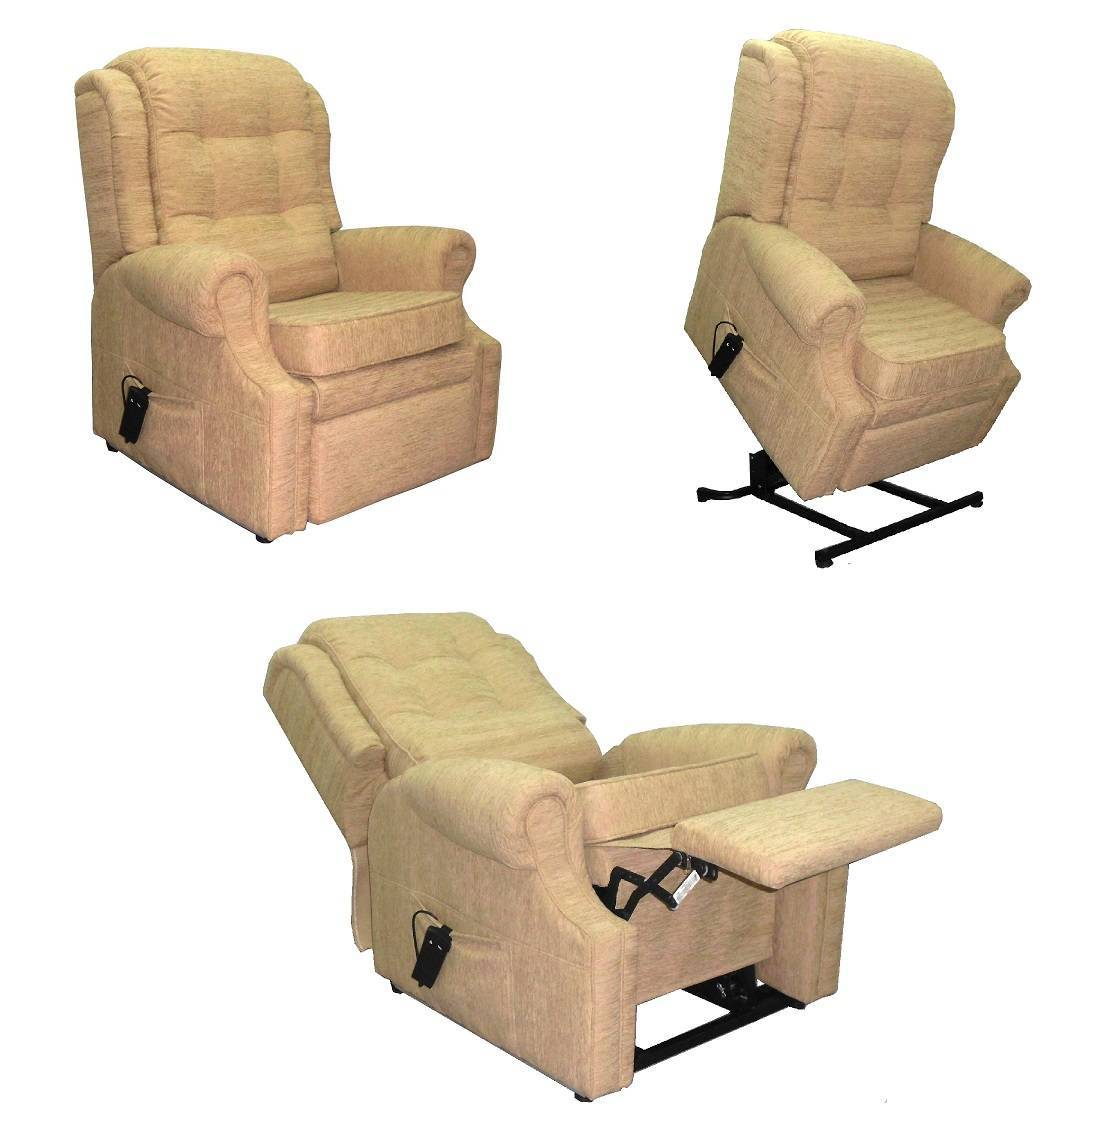 BH-8199 Lift Chair, Recliner Chair, Home Care Furniture